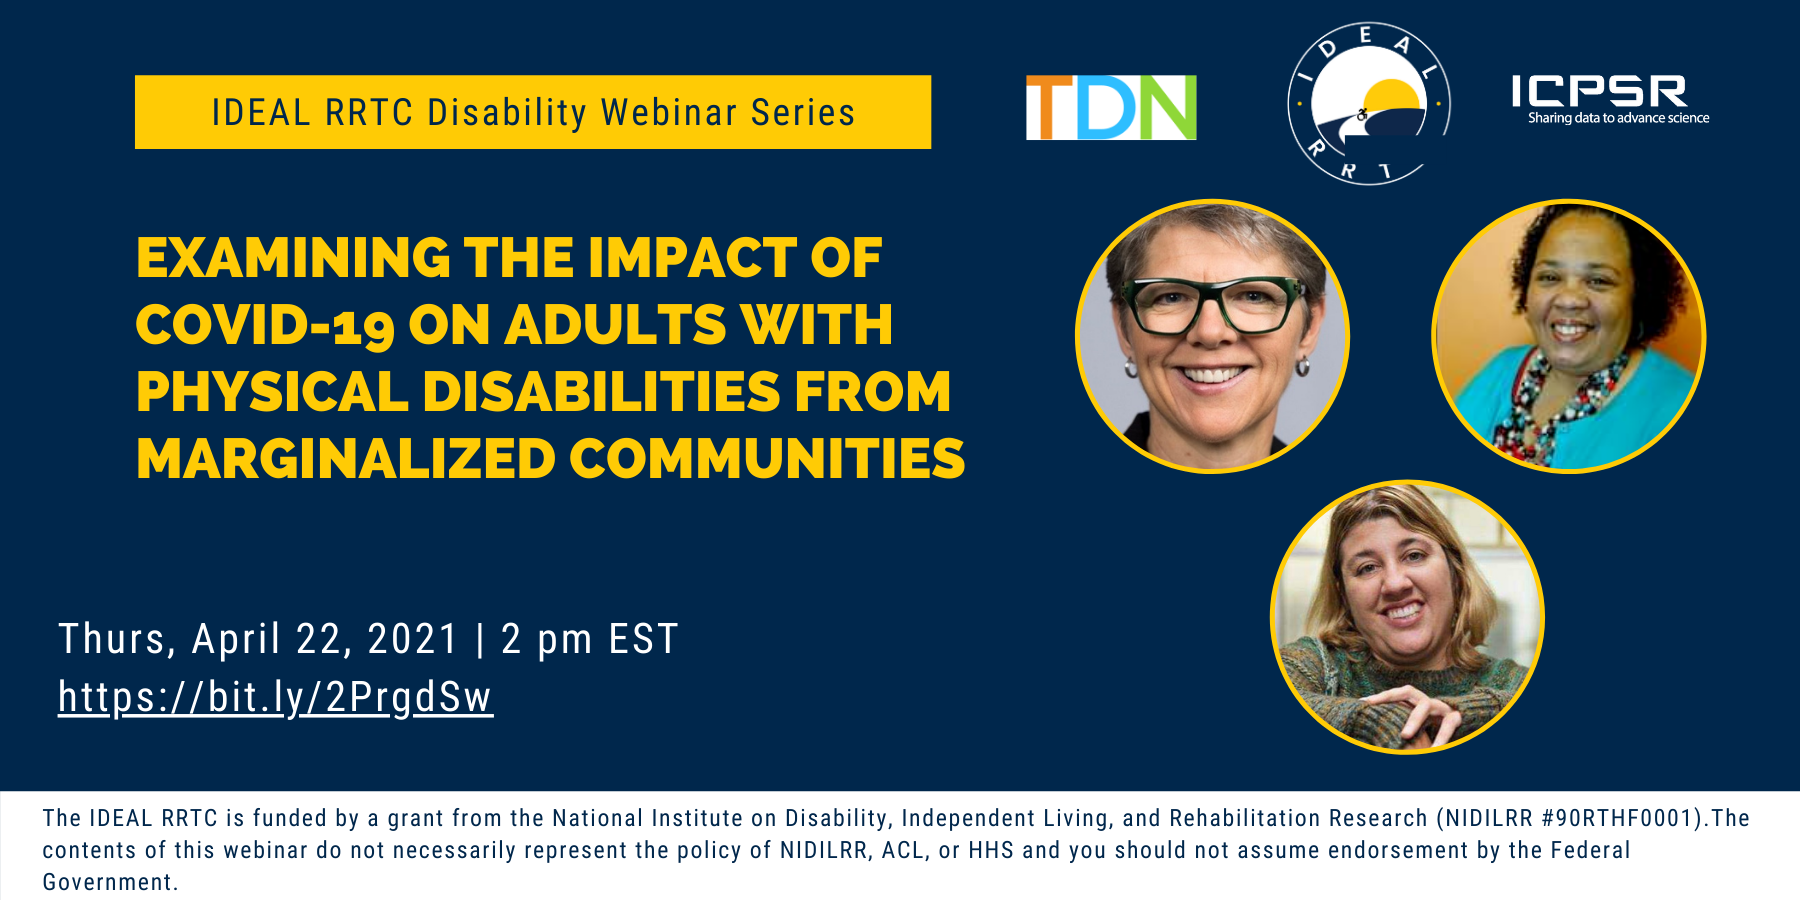 IDEAL RRTC Webinar Series Examining the Impact of COVID-19 on adults with physical disabilities from marginalized communities Thursday April 22, 2021 2 p.m. Eastern Standard Time.